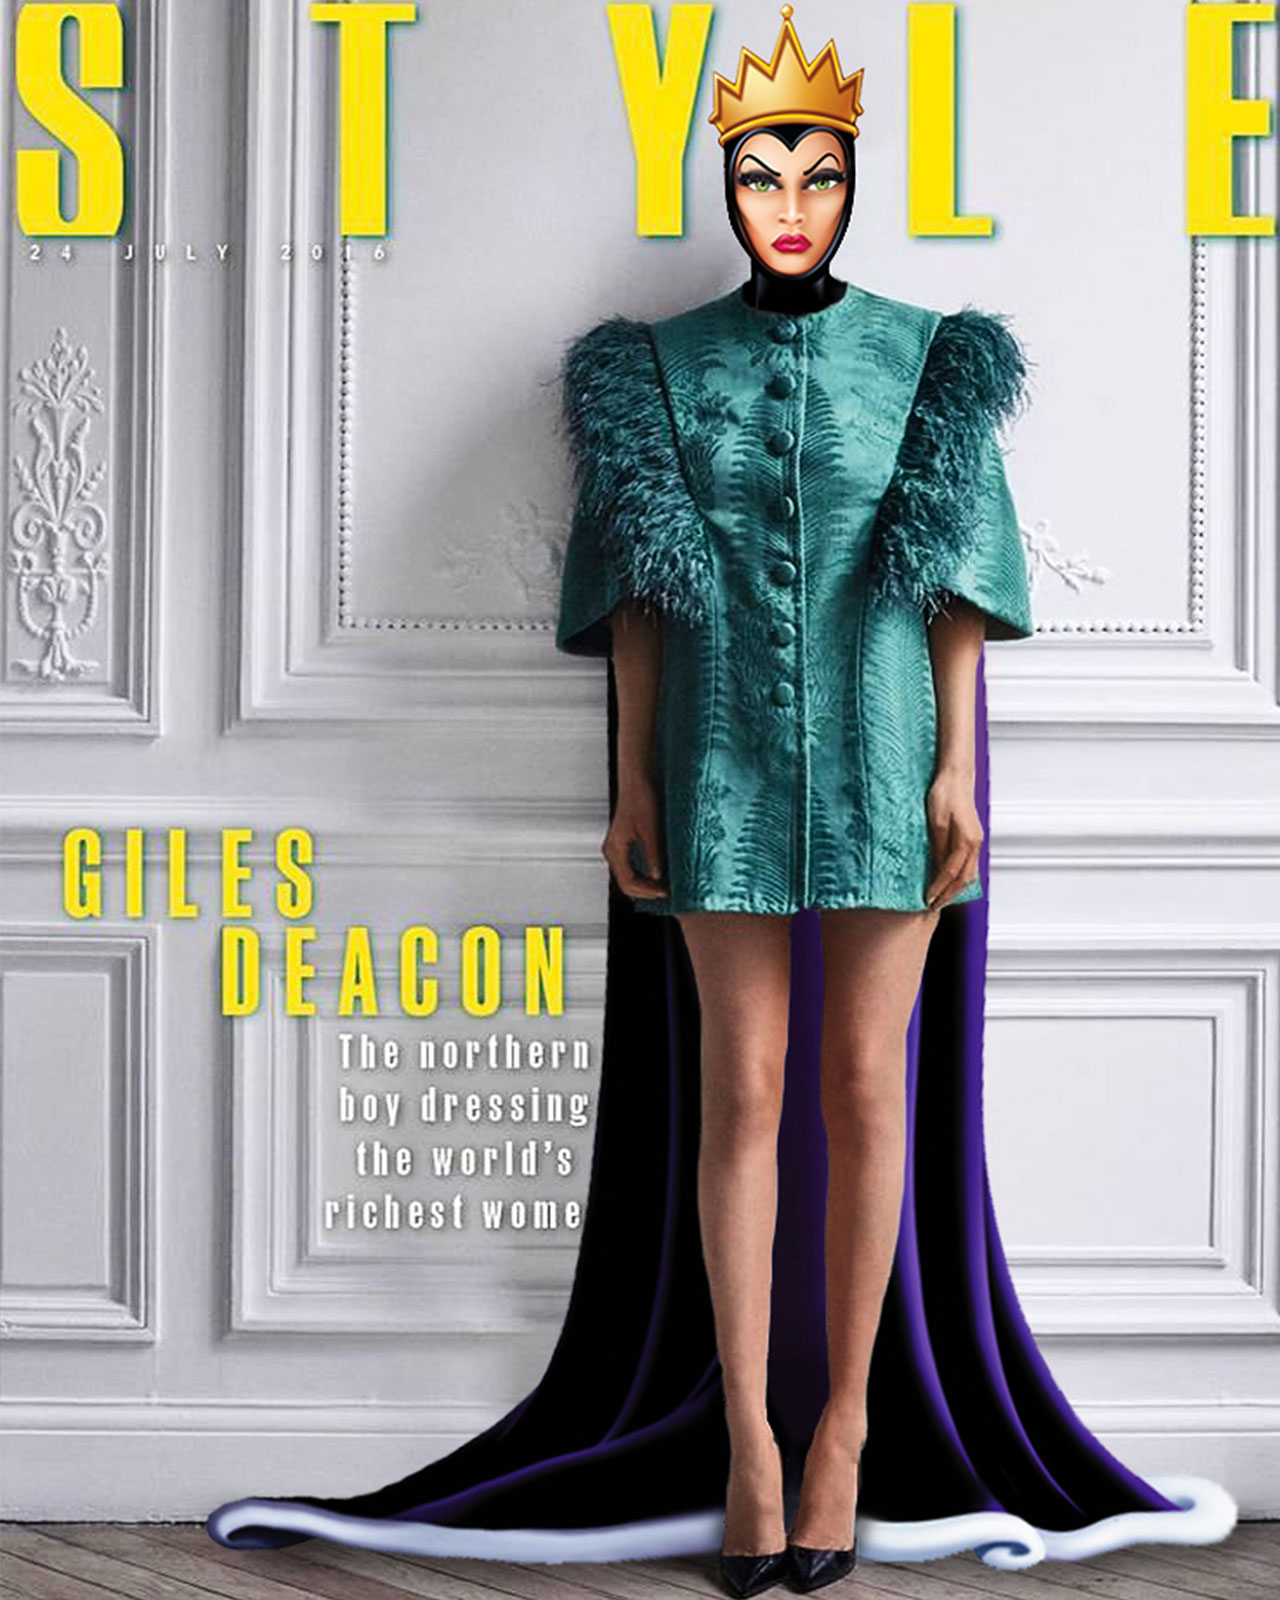 Bella Hadid as Evil Queen in Giles Deacon for The Sunday Times Style. Photographed by Phil Poynter, styled by Katie Eleanor Grand, photo edit by Gregory Masouras.